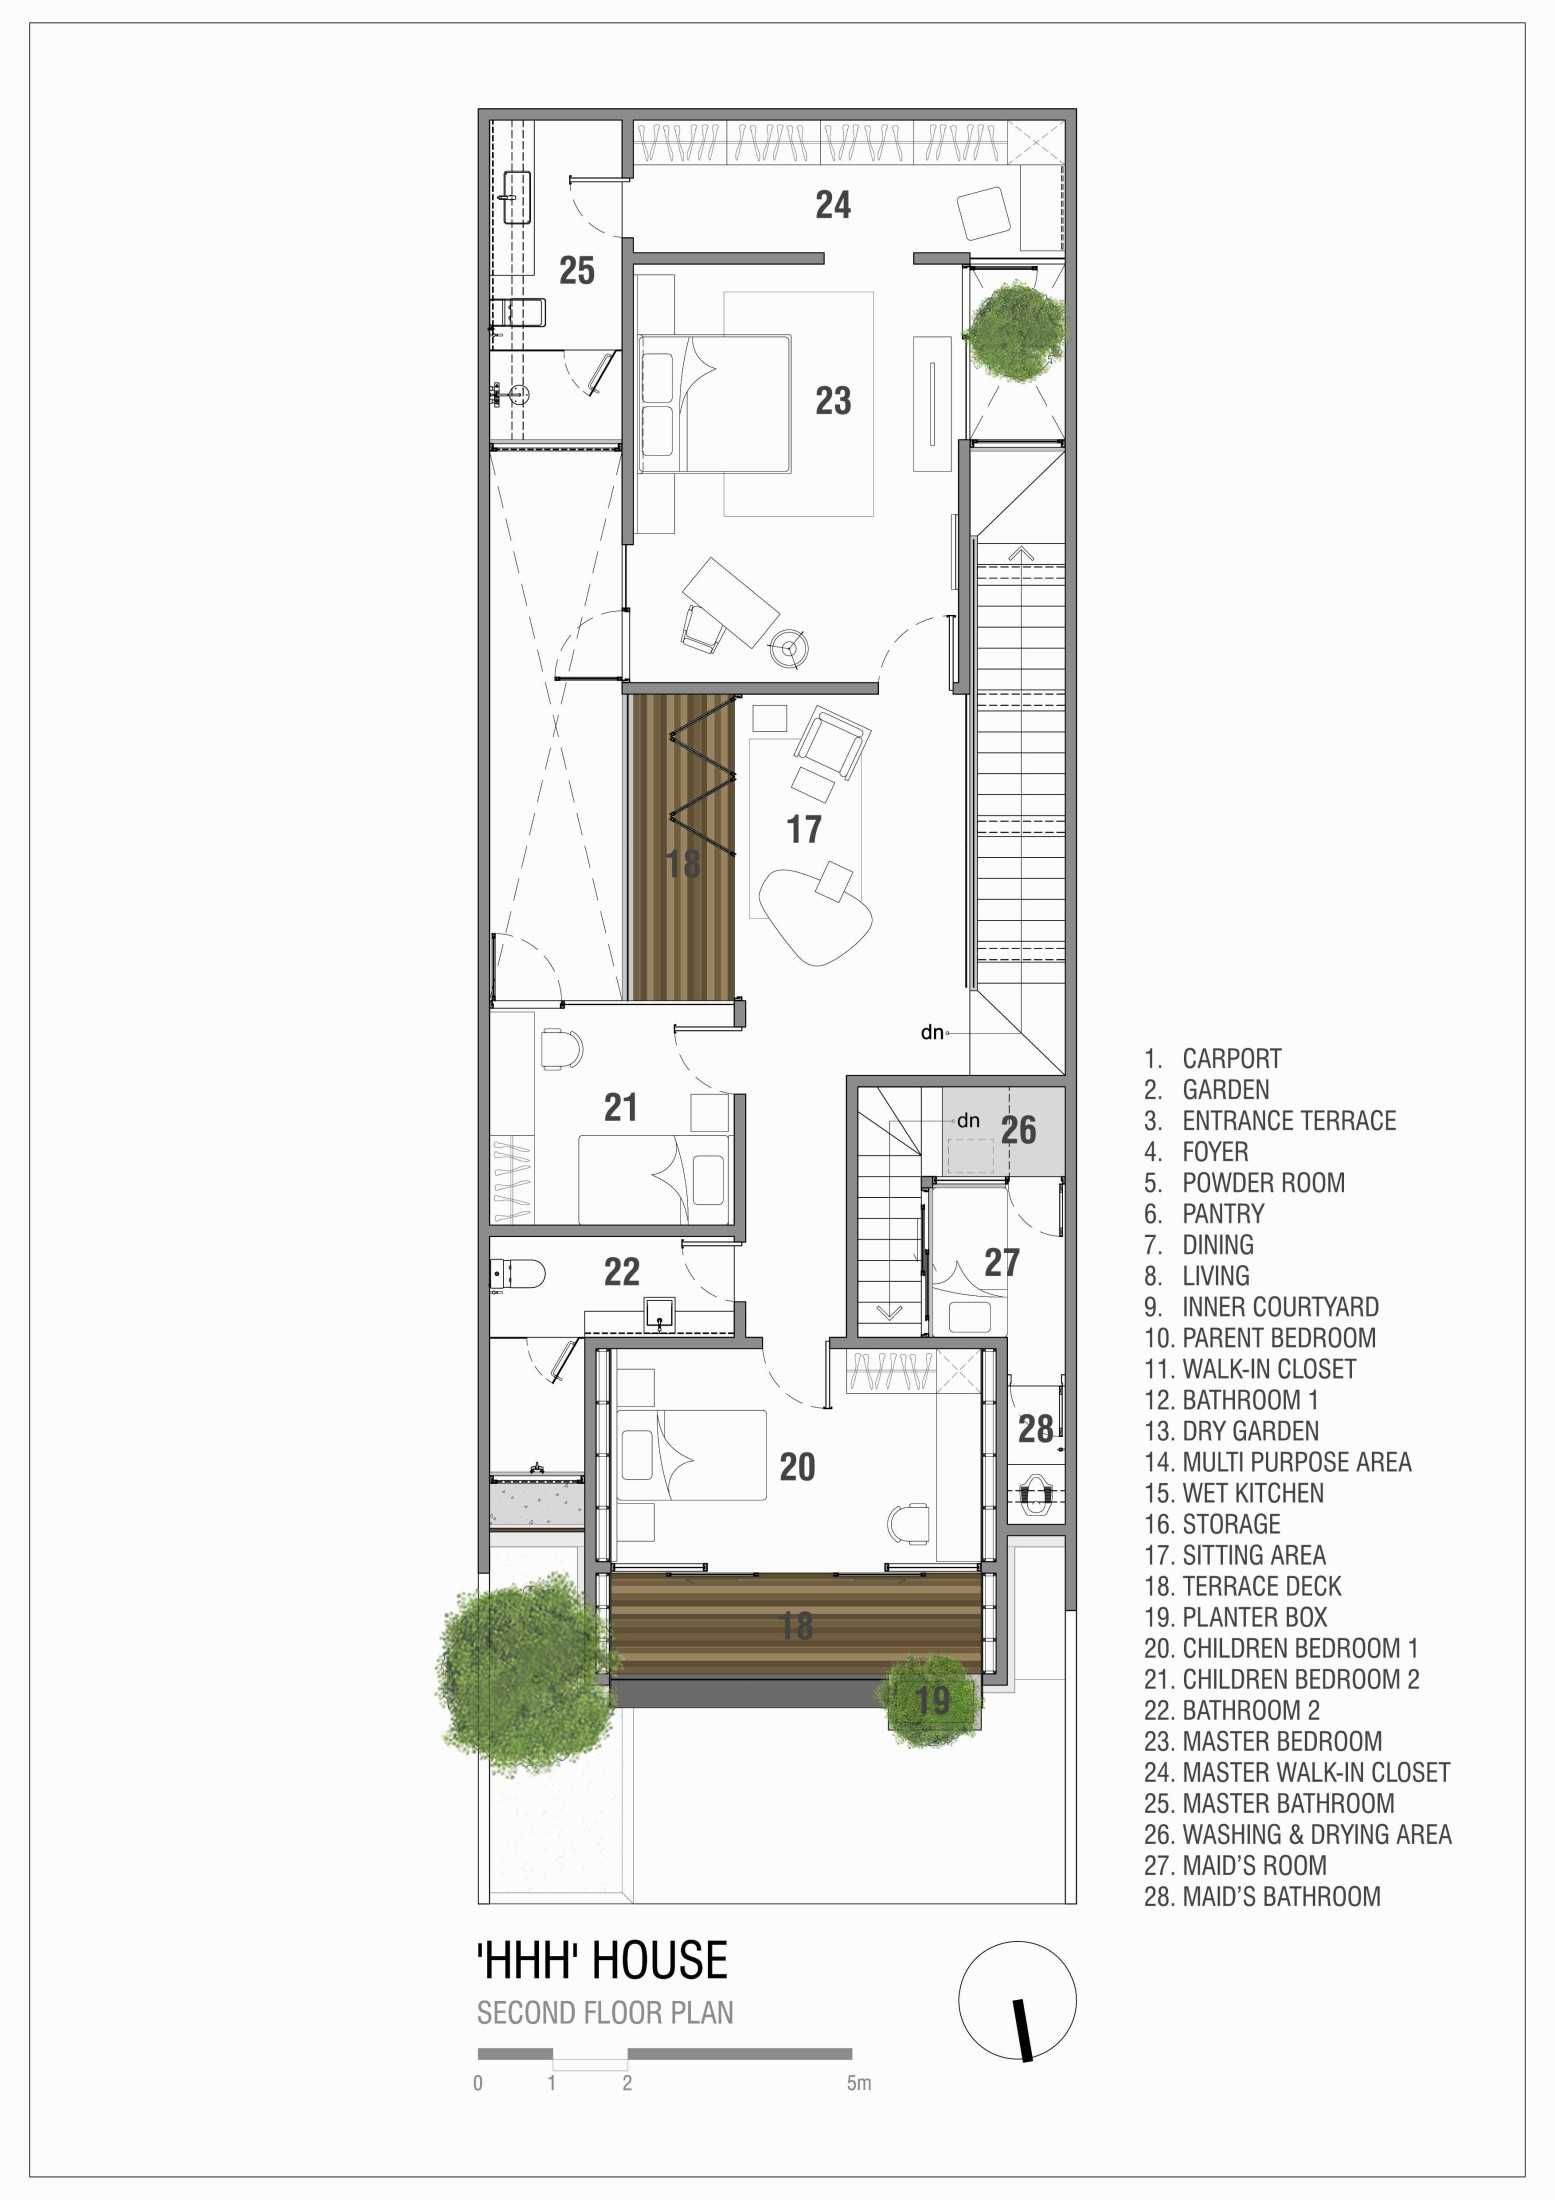 Simple Projects Architecture 'hhh' House Surabaya, Kota Sby, Jawa Timur, Indonesia  Simple-Projects-Architecture-Hhh-House  75096